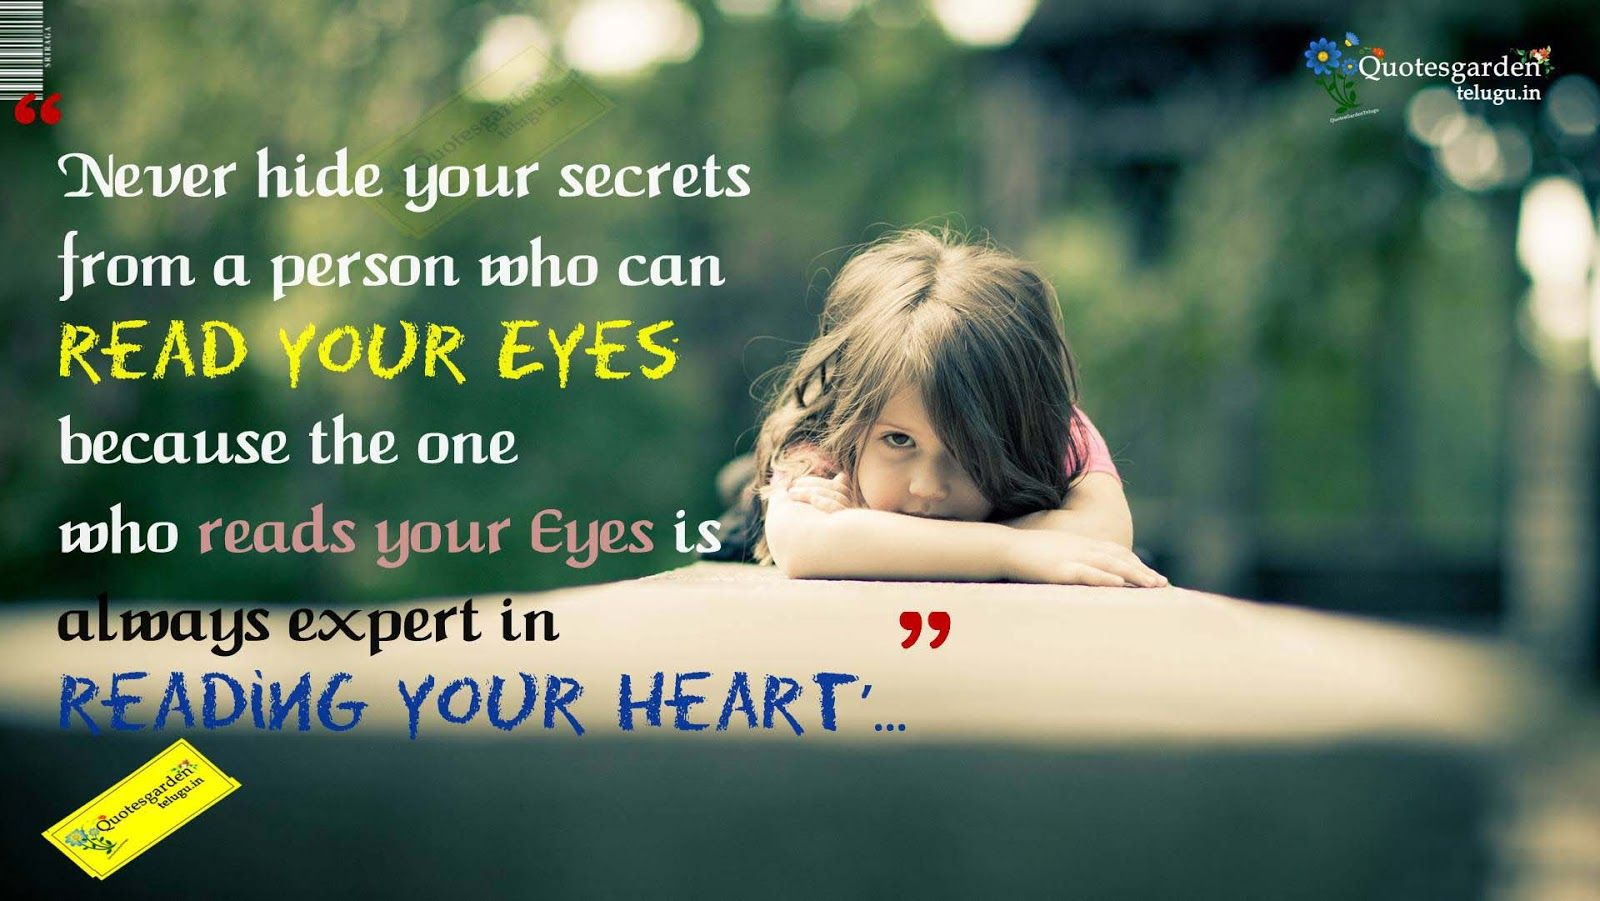 Love Wallpaper With Heart Touching Quotes : Heart touching Quotes with hd wallpapers 774 QUOTES GARDEN TELUGU Telugu Quotes English ...